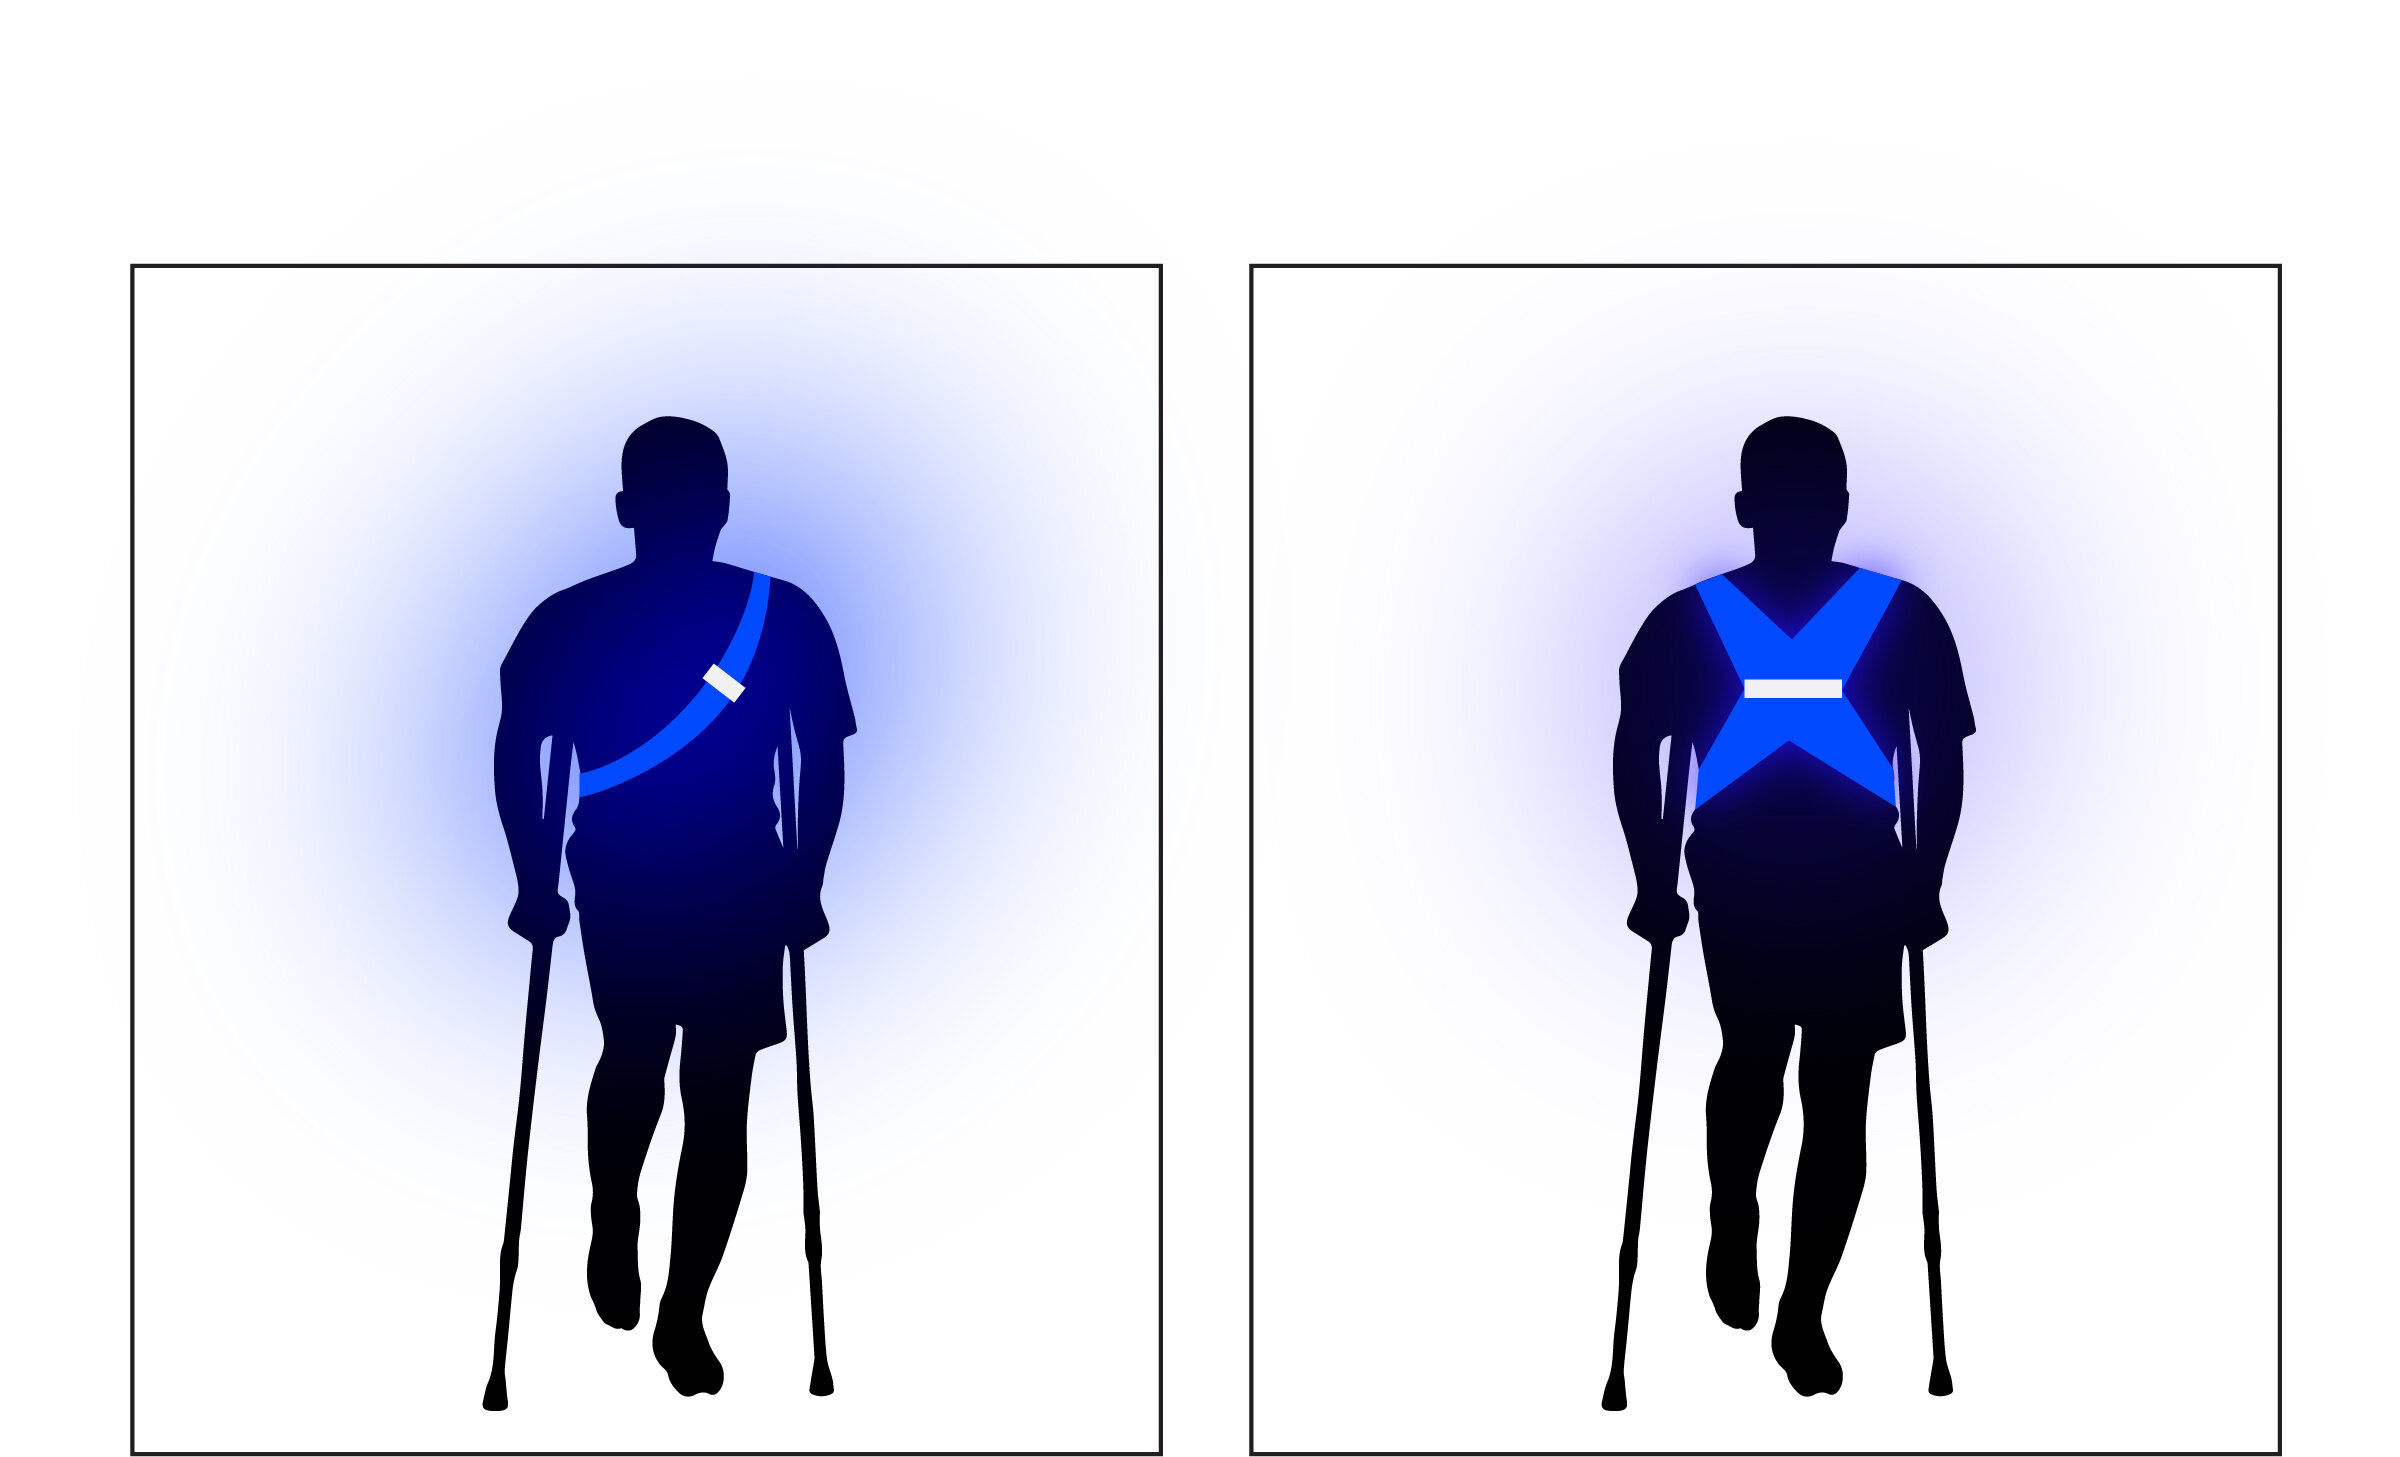 Idea 2 - Wearable light for people who need extra help so it is easier for firemen and fire wardens to locate them.